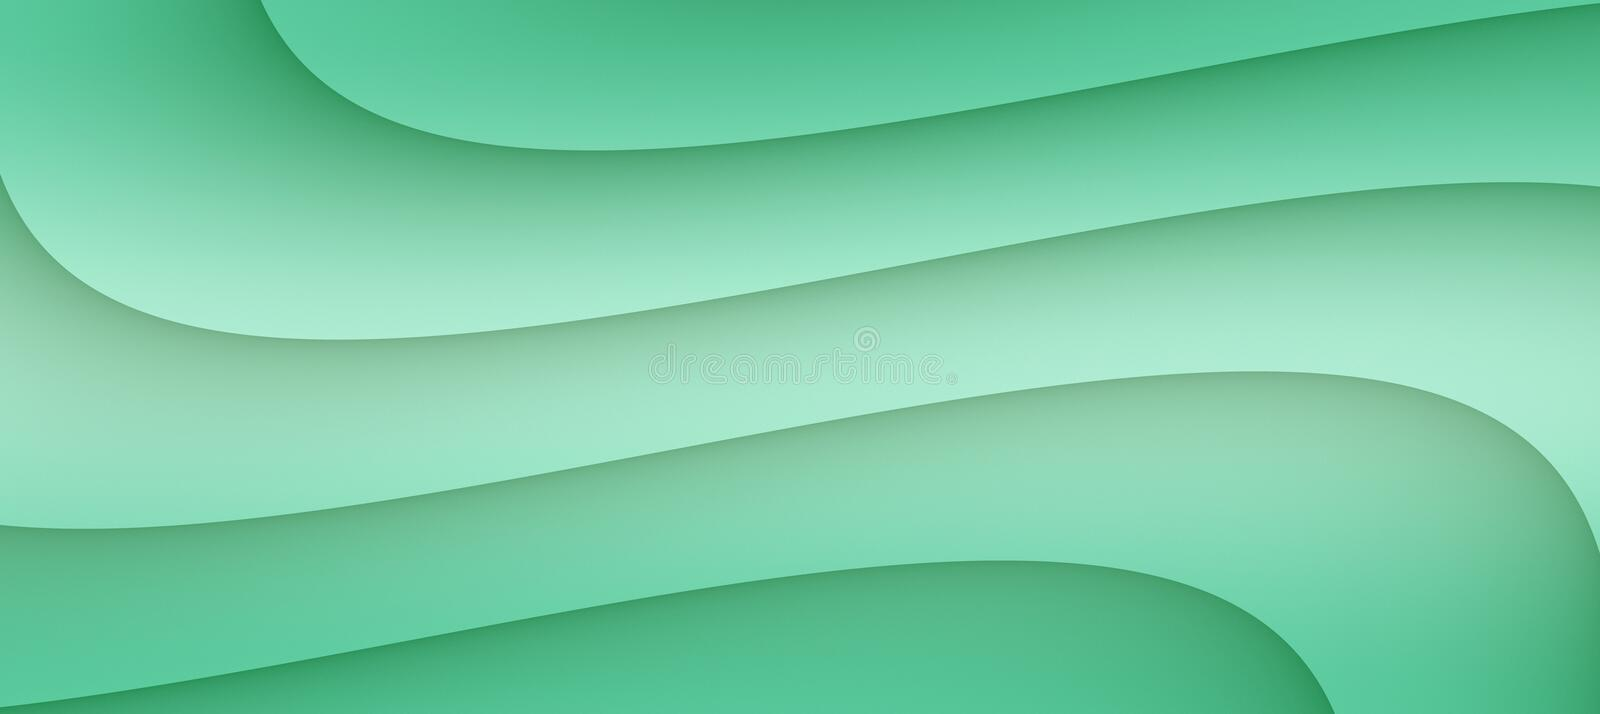 High resolution smooth flowing curves abstract background illustration in shades of refreshing sea green royalty free illustration